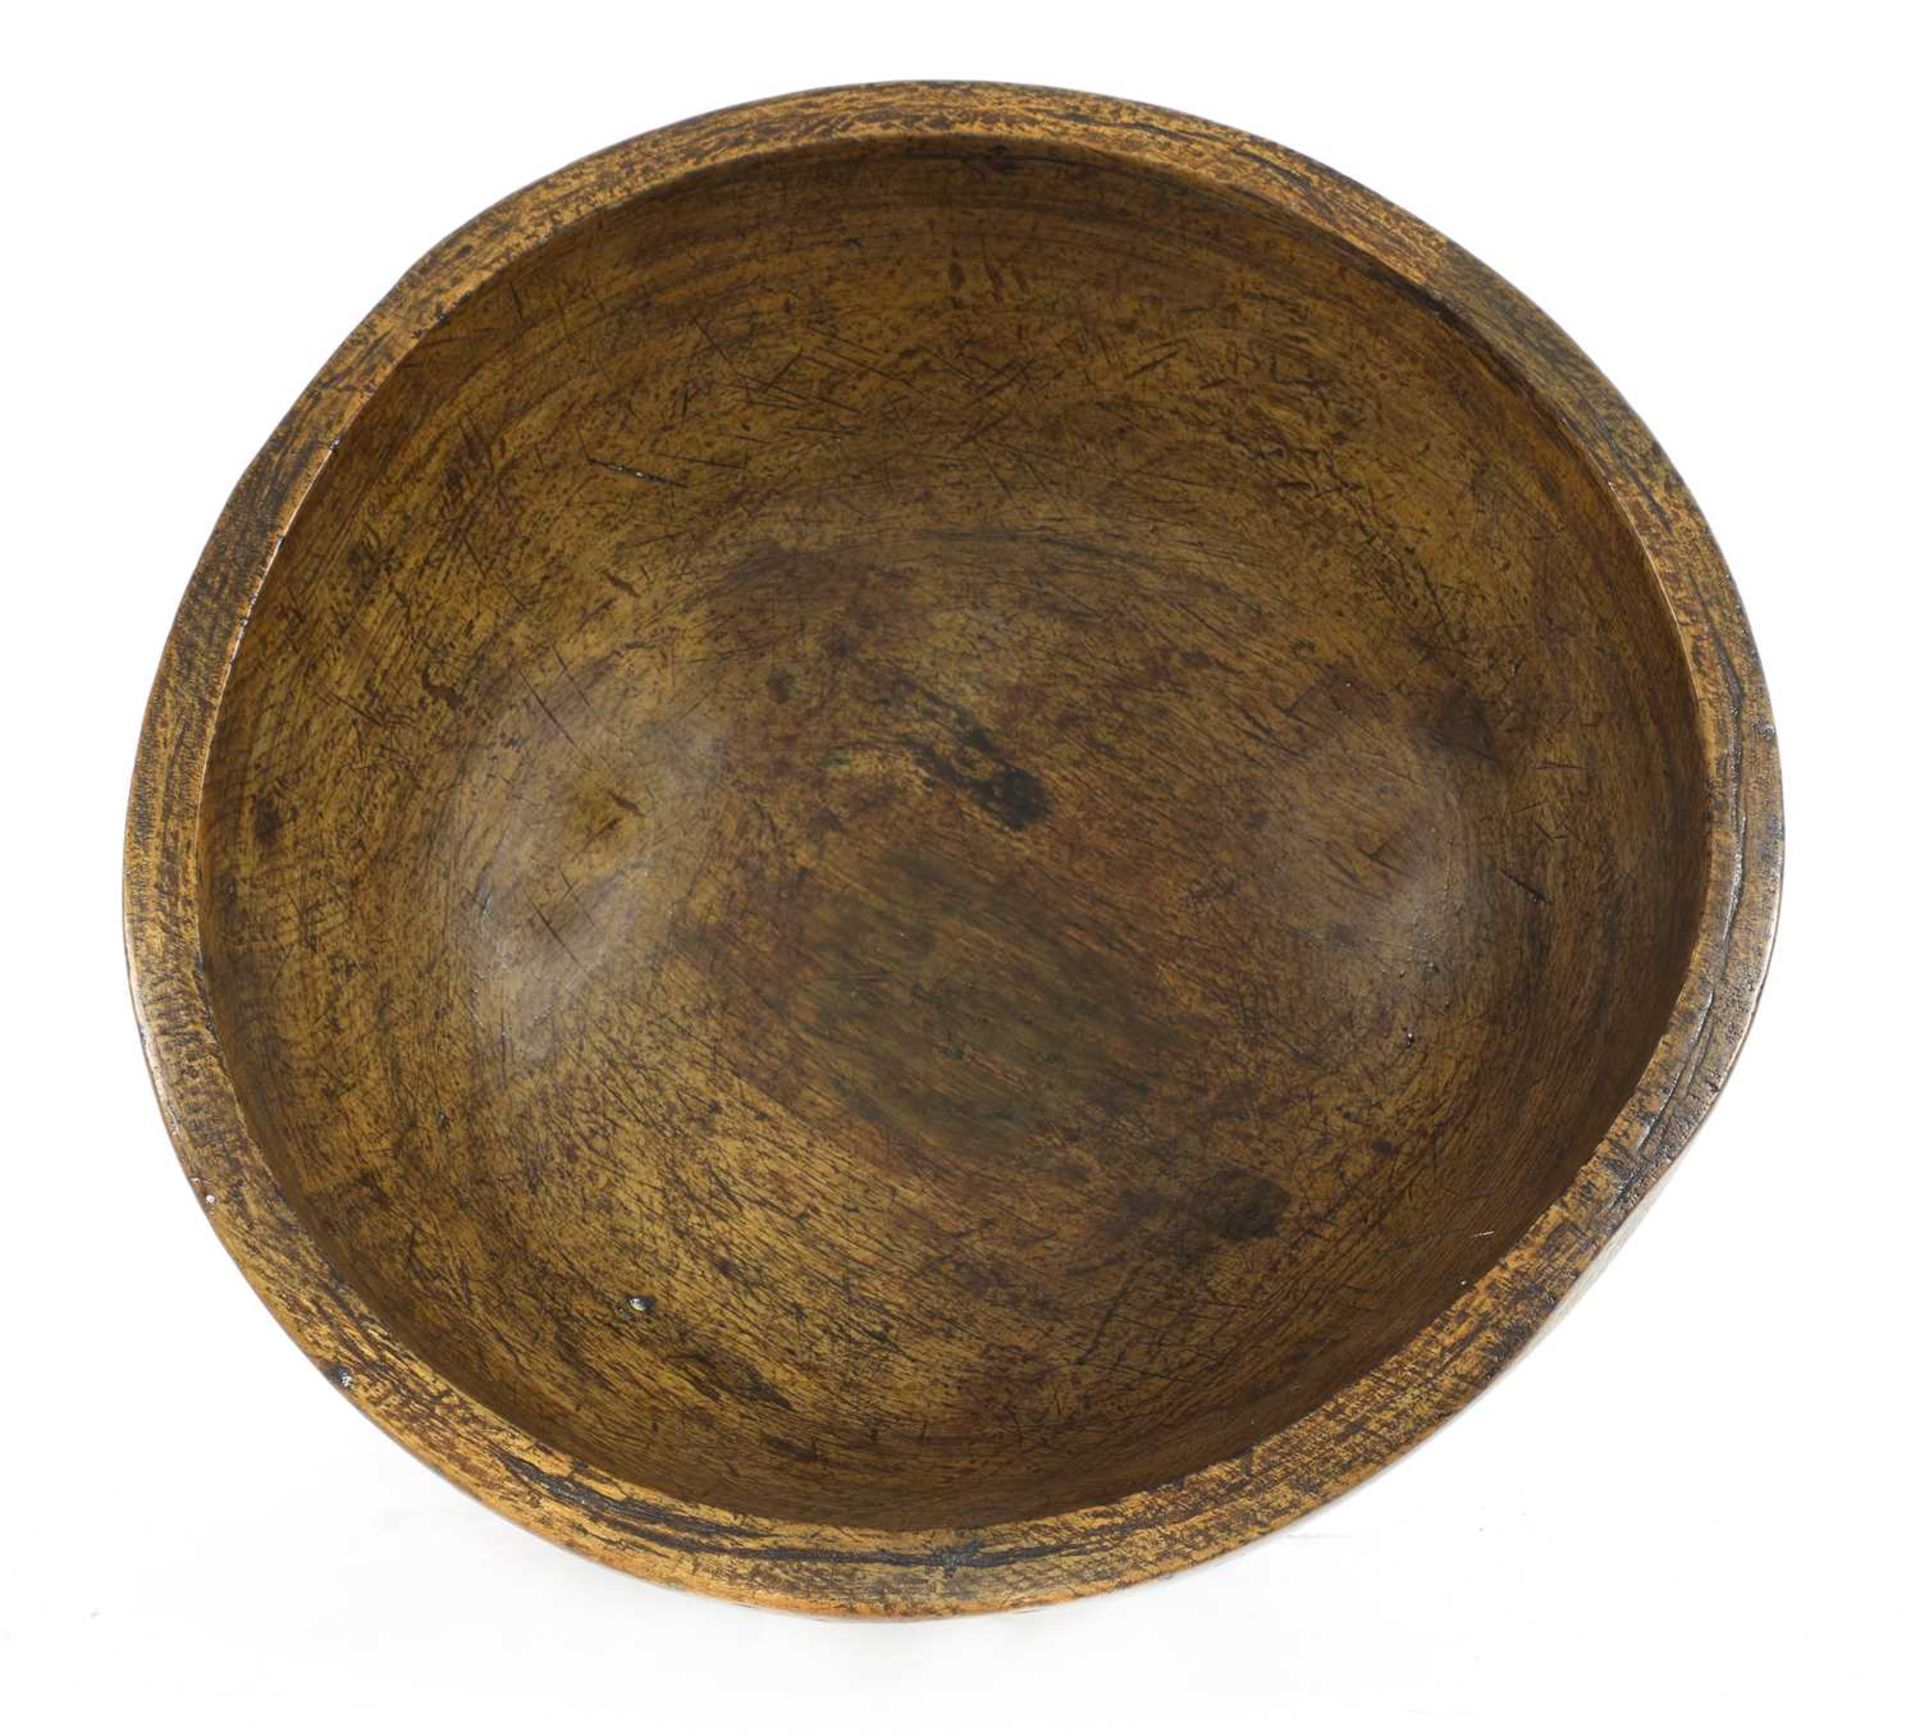 A large sycamore dairy bowl, - Image 2 of 4